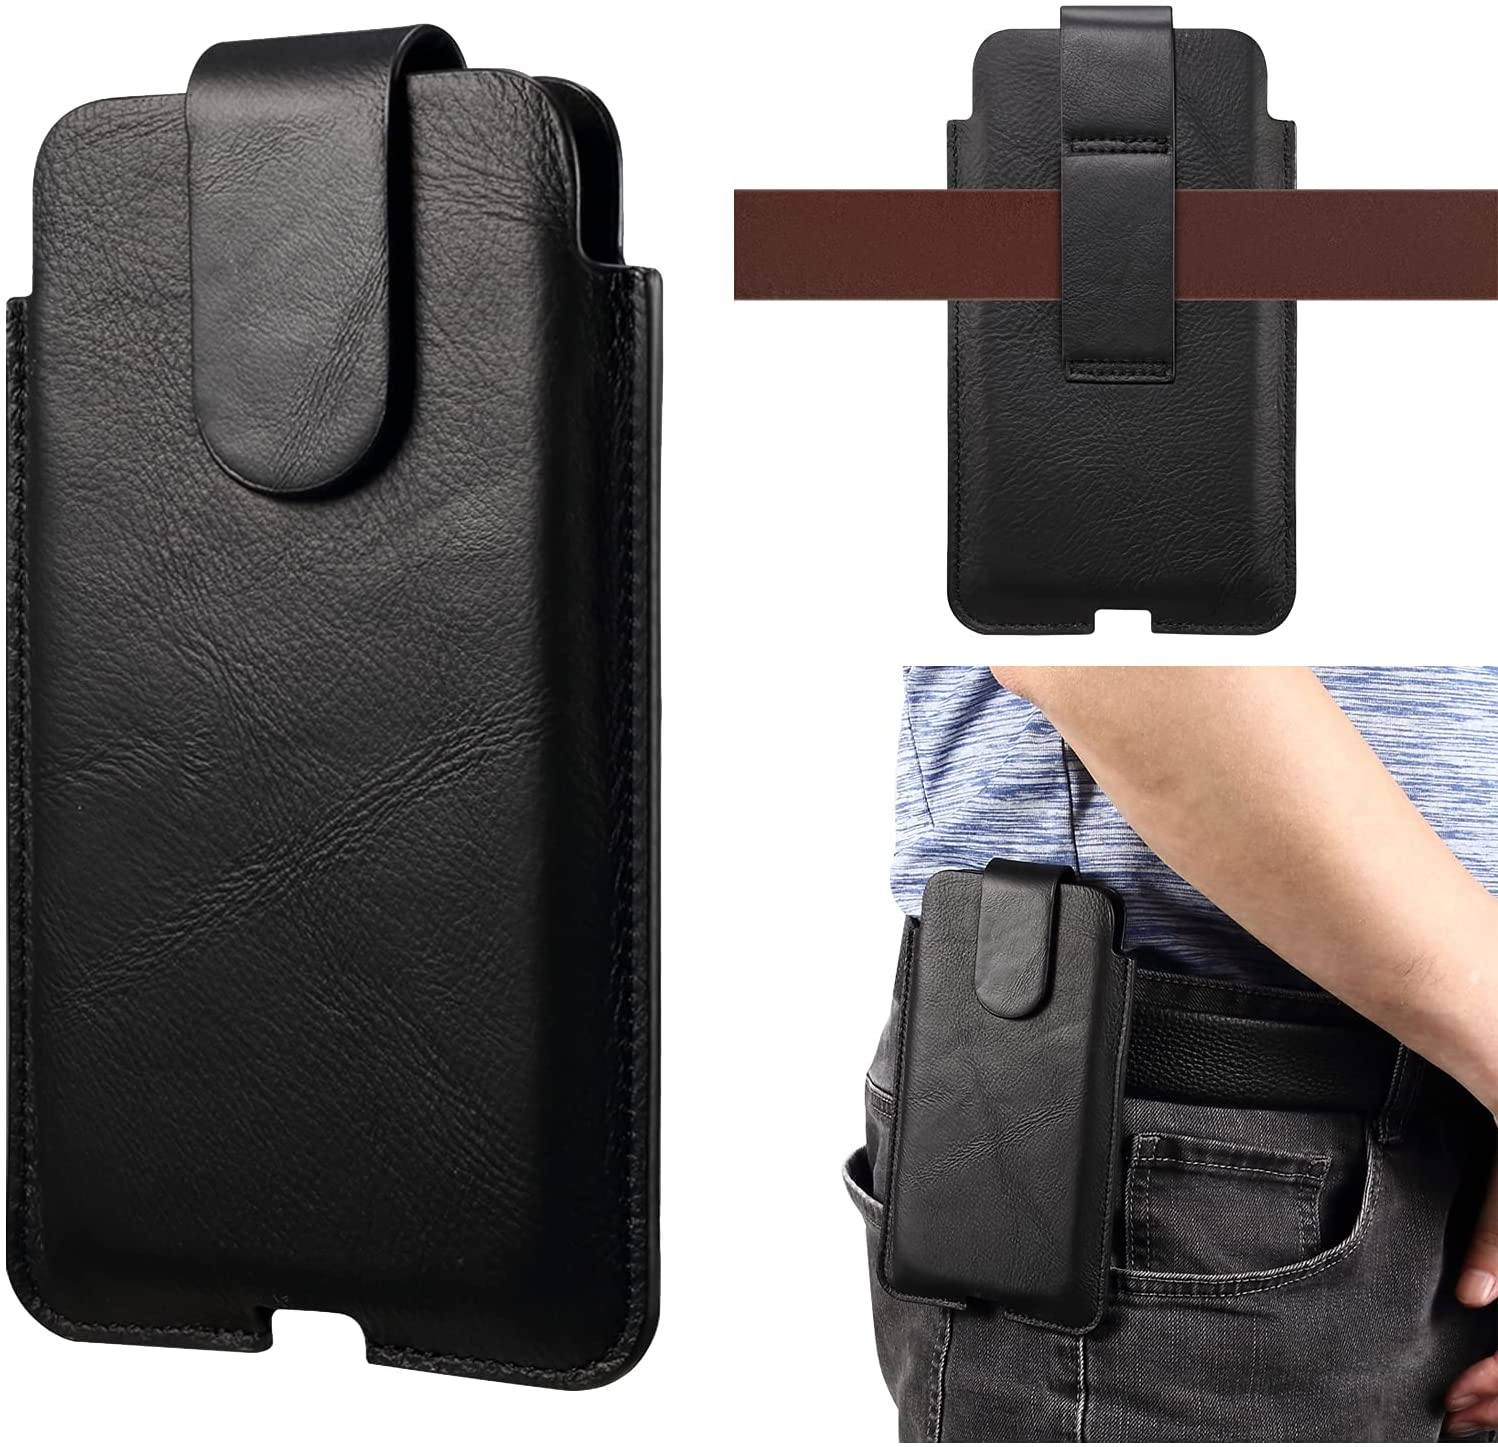 Premium Genuine At the price of surprise Max 80% OFF Leather Pouch Holster Case 10 for Pl Sony Xperia